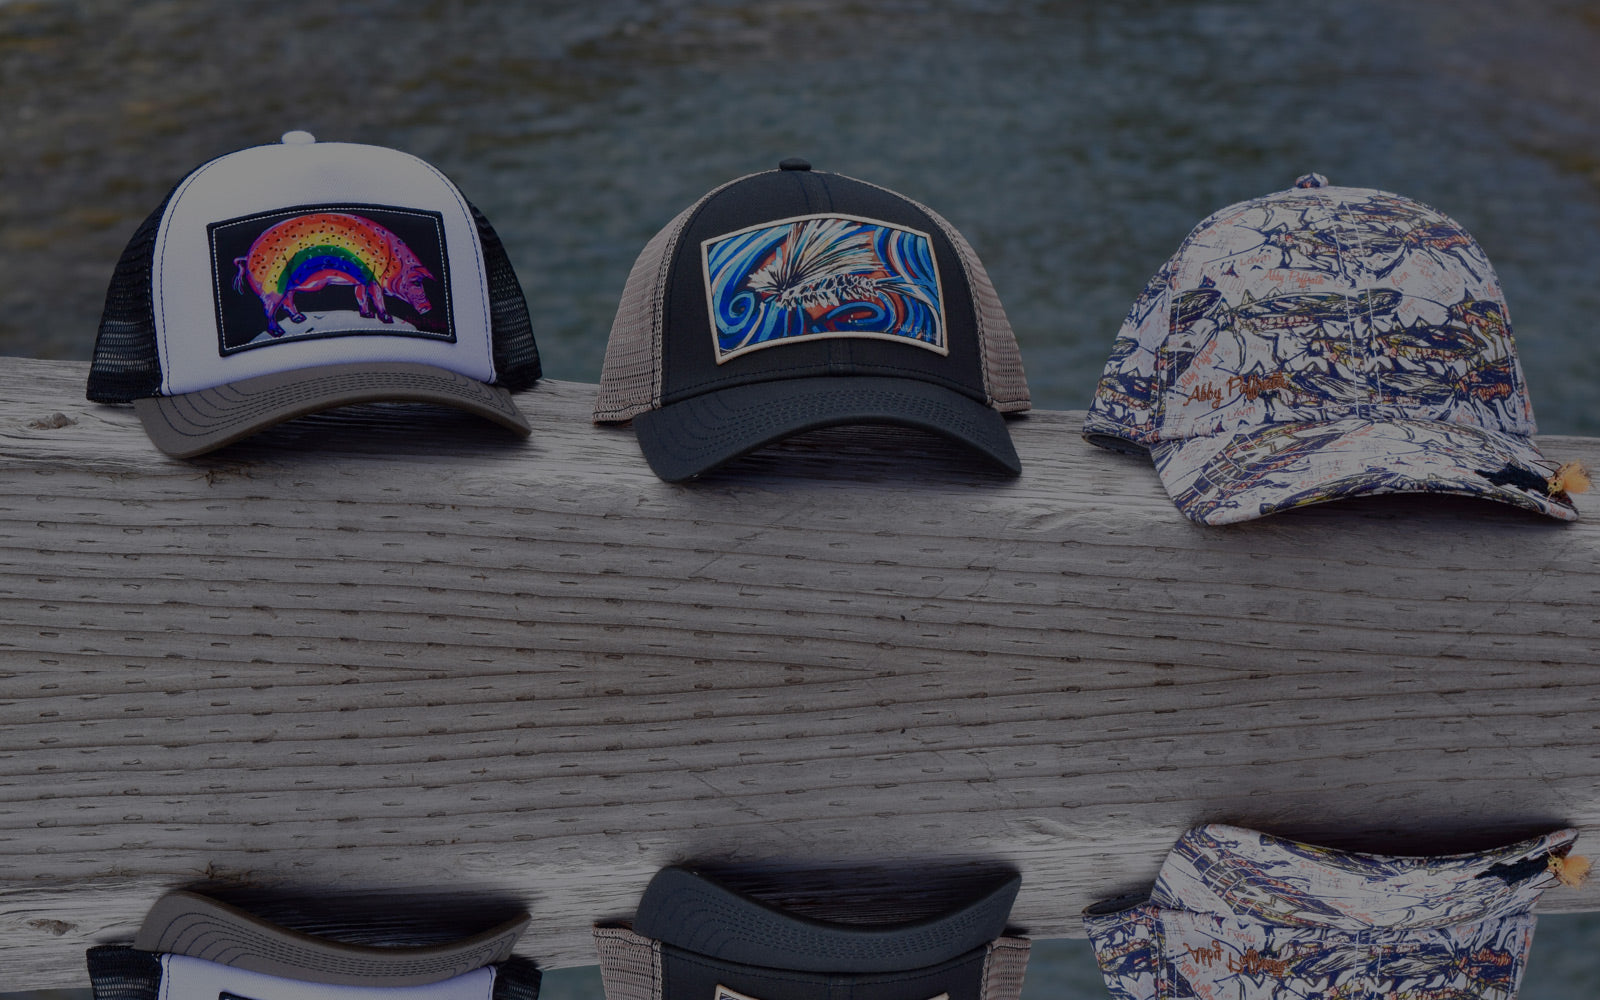 Artist Series Trucker Hats